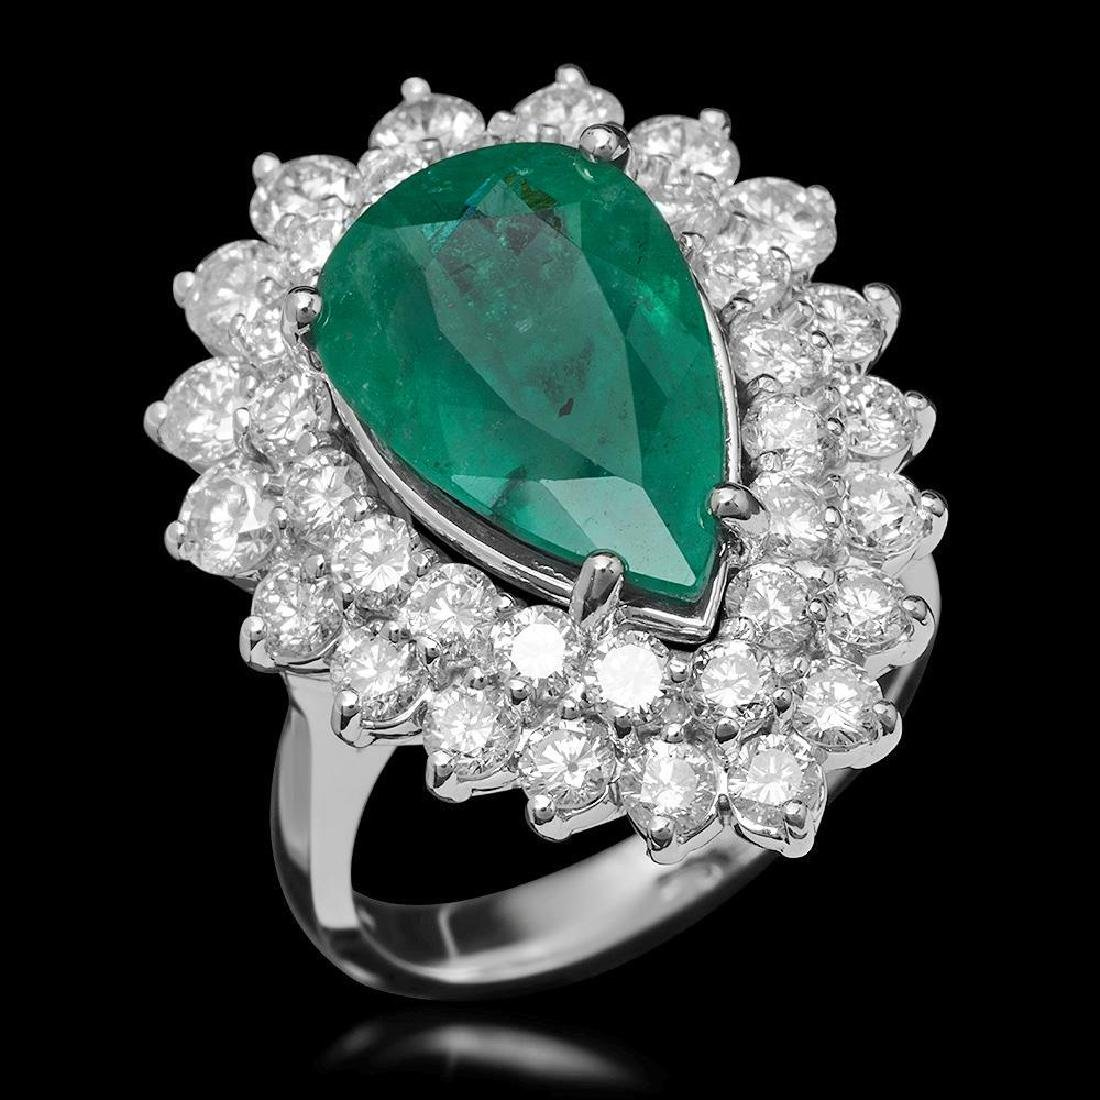 14K Gold 5.12ct Emerald & 2.75ct Diamond Ring